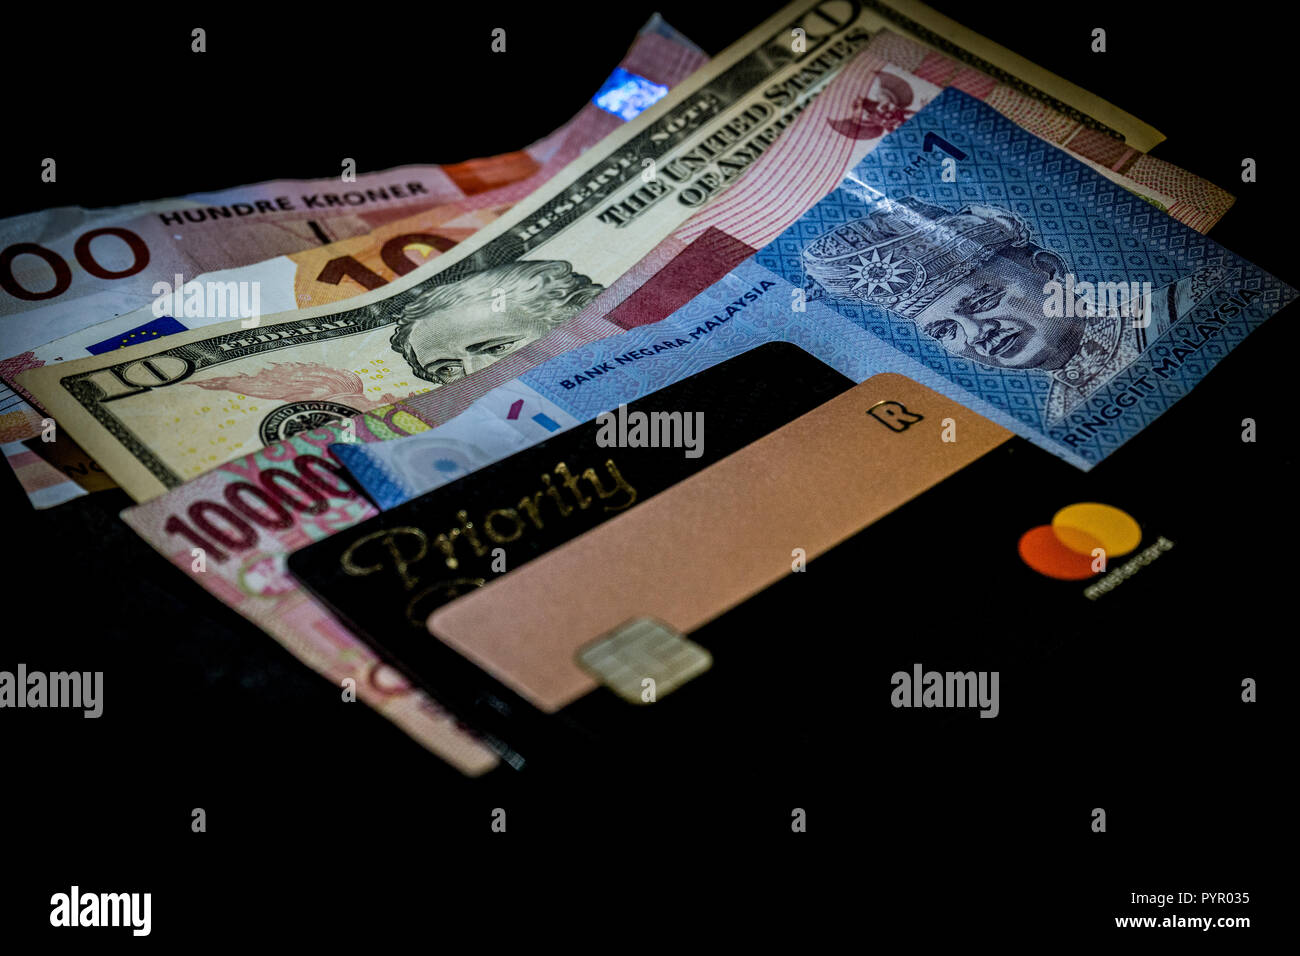 Multi national currencies together with Revolut Mastercard and Priority Pass card for airport lounge access. Concept of international traveler finance - Stock Image